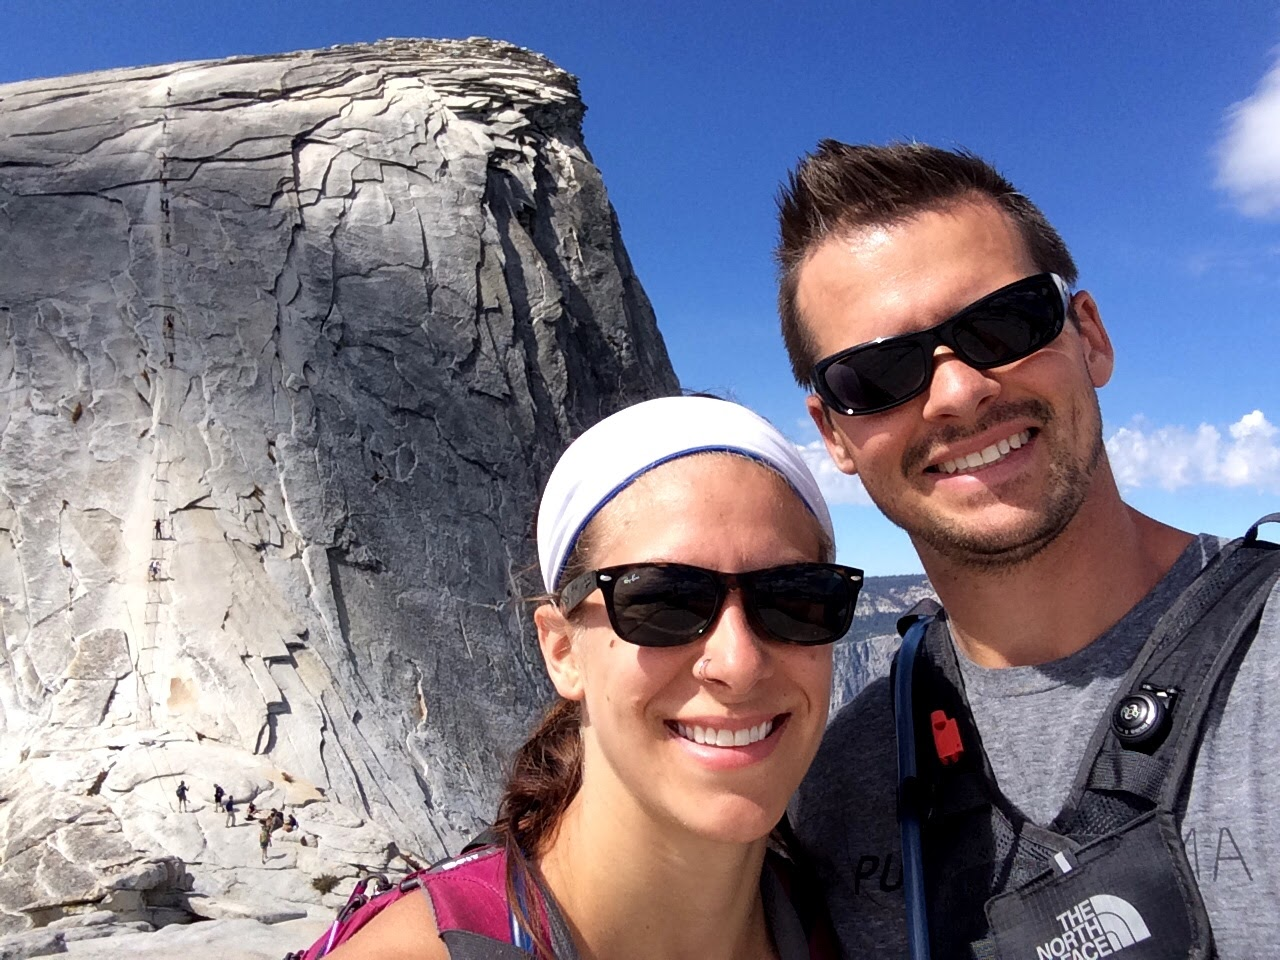 Roadtripping through Yosemite, and hiking up Half Dome